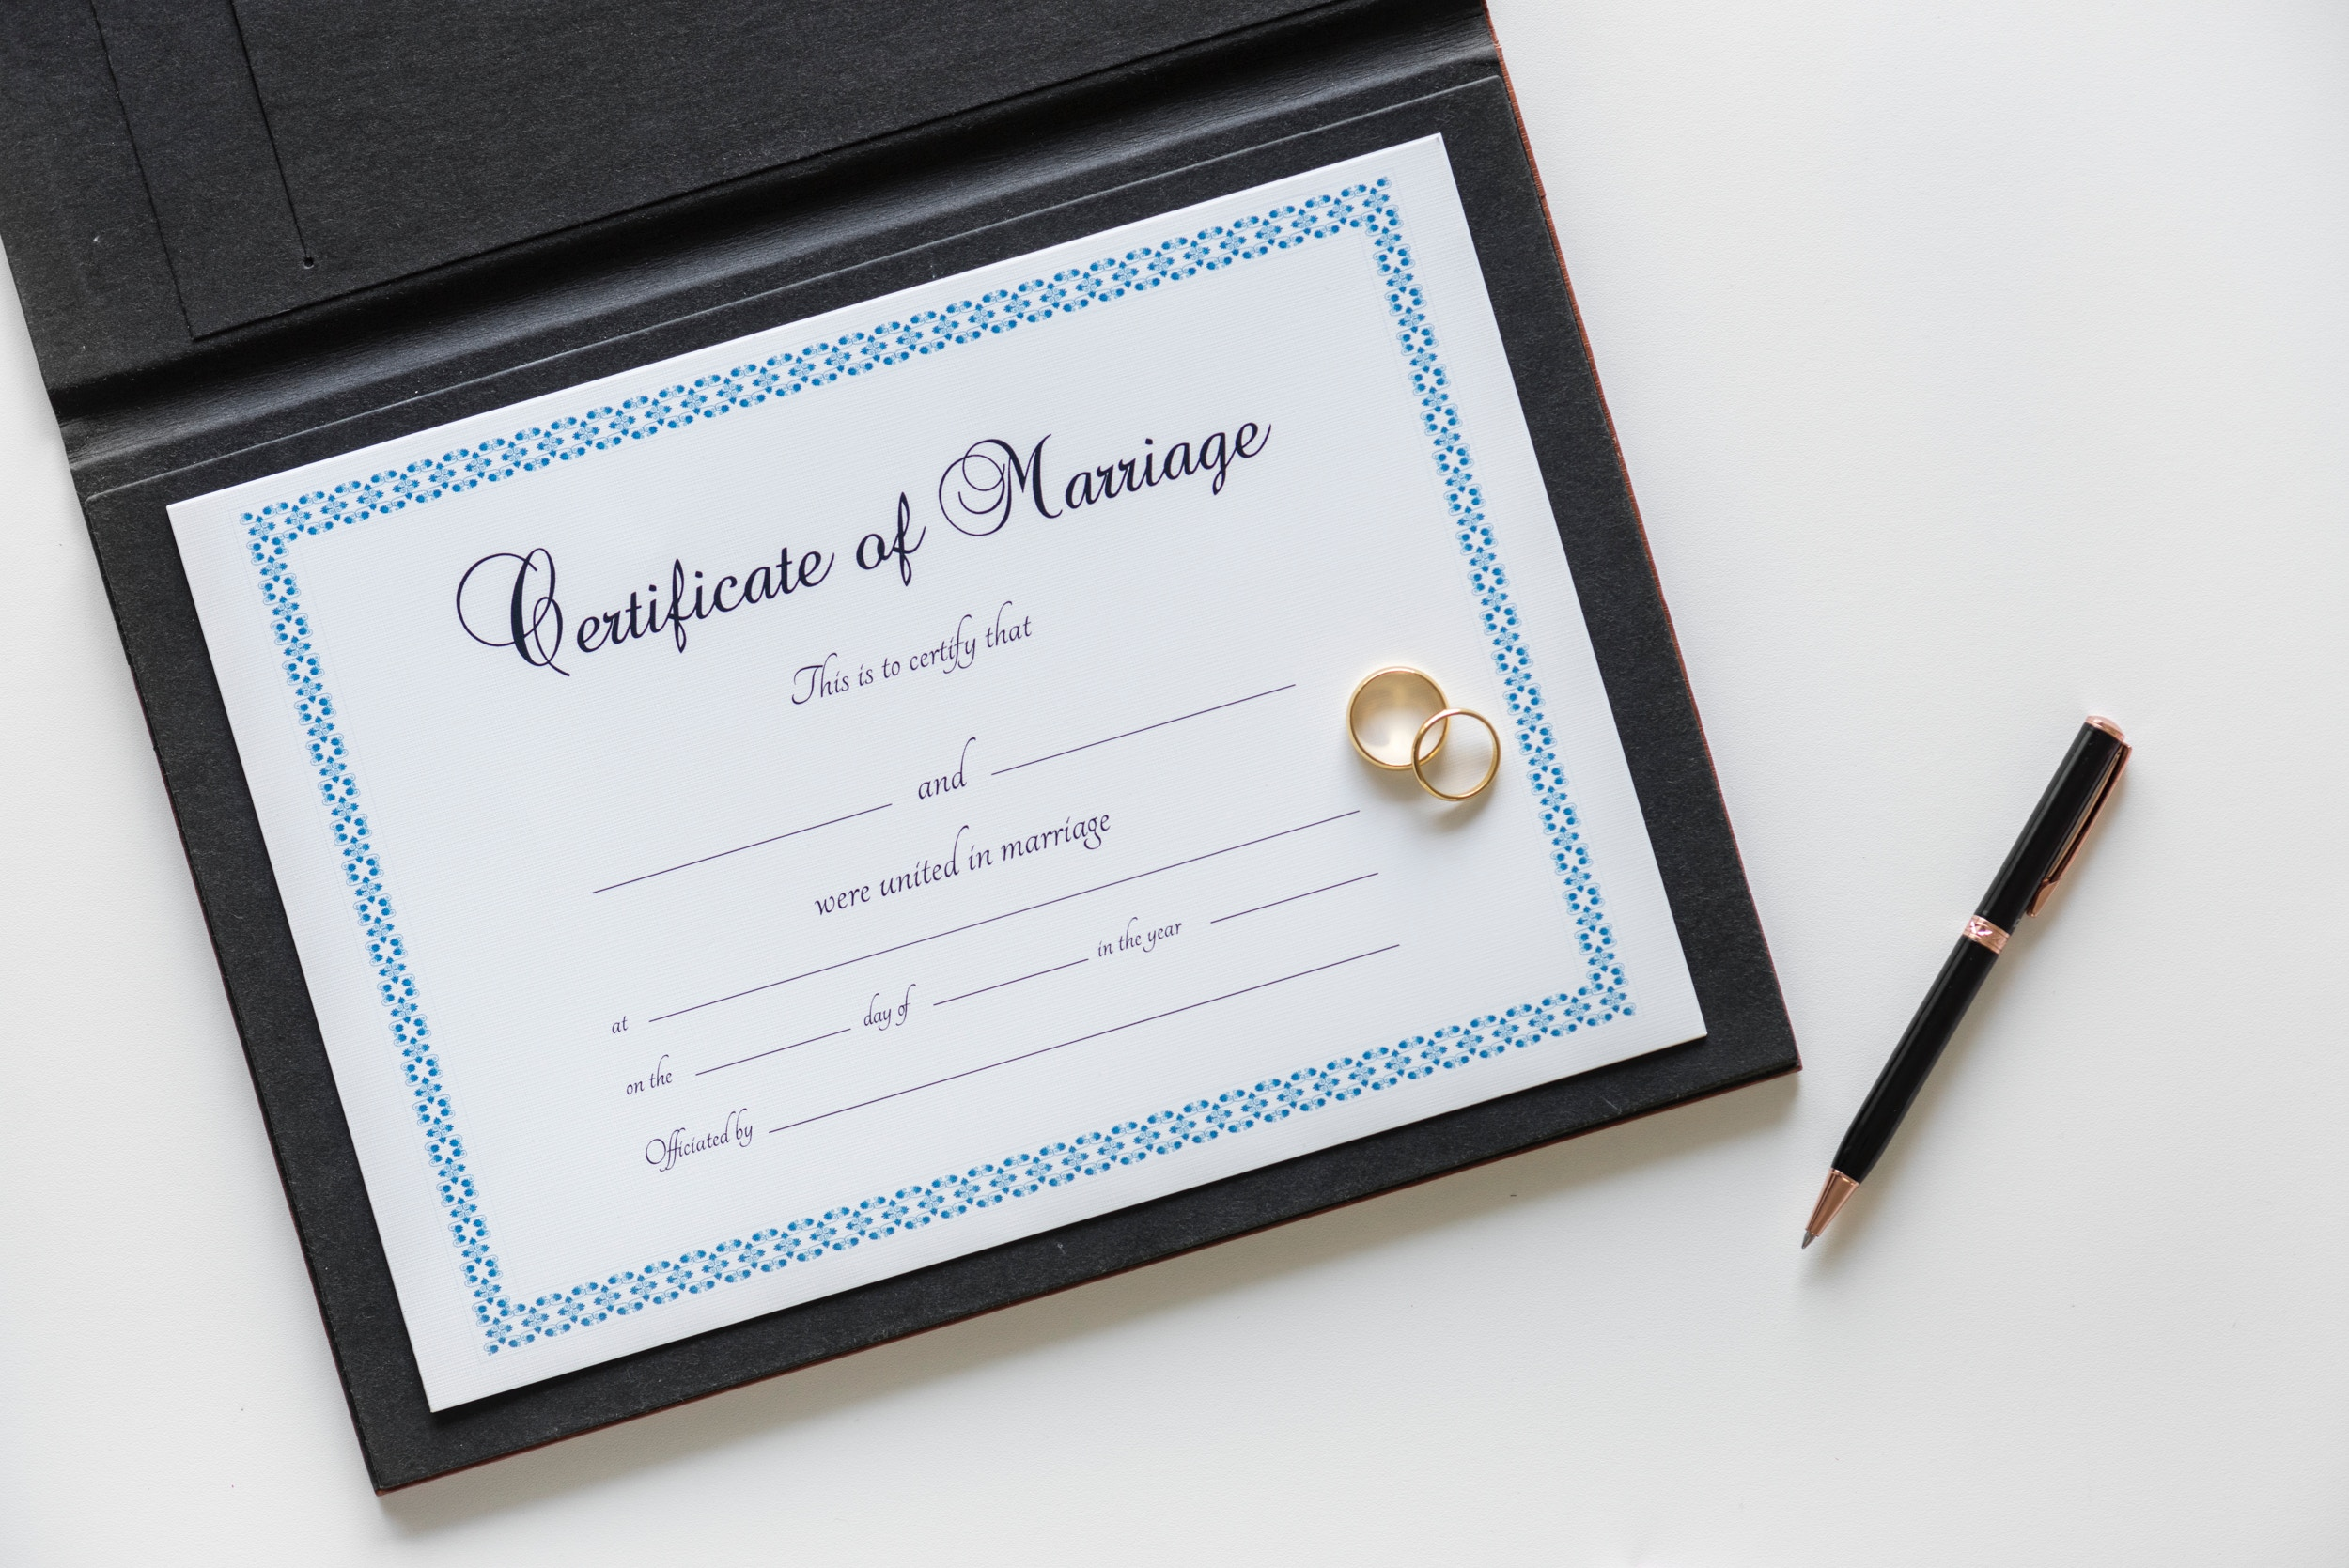 Are you ready for this? - Changing your name by marriage is FULL ON!Here's a great free download from Easy Name Change (I am not paid by this company I just like what they offer)